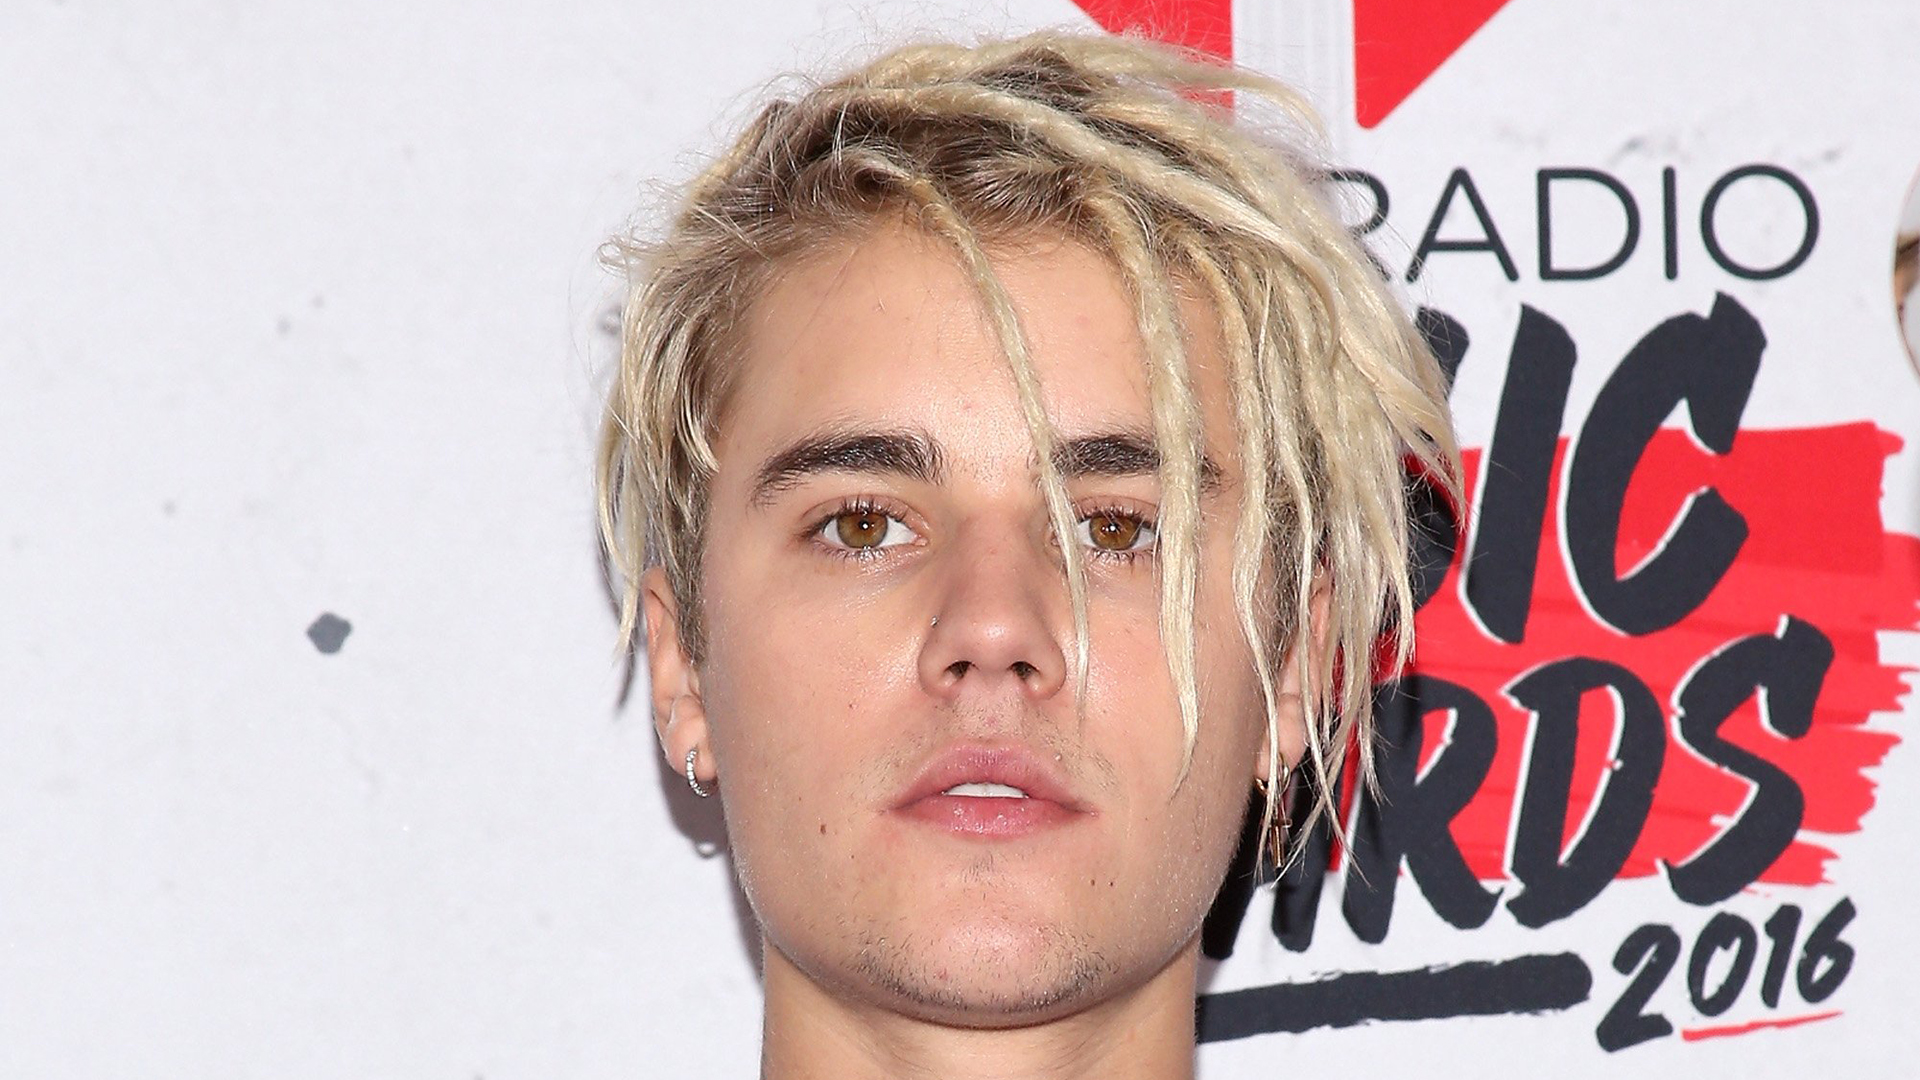 Justin Bieber ditches dreadlocks, sports freshly shaved head - TODAY ...